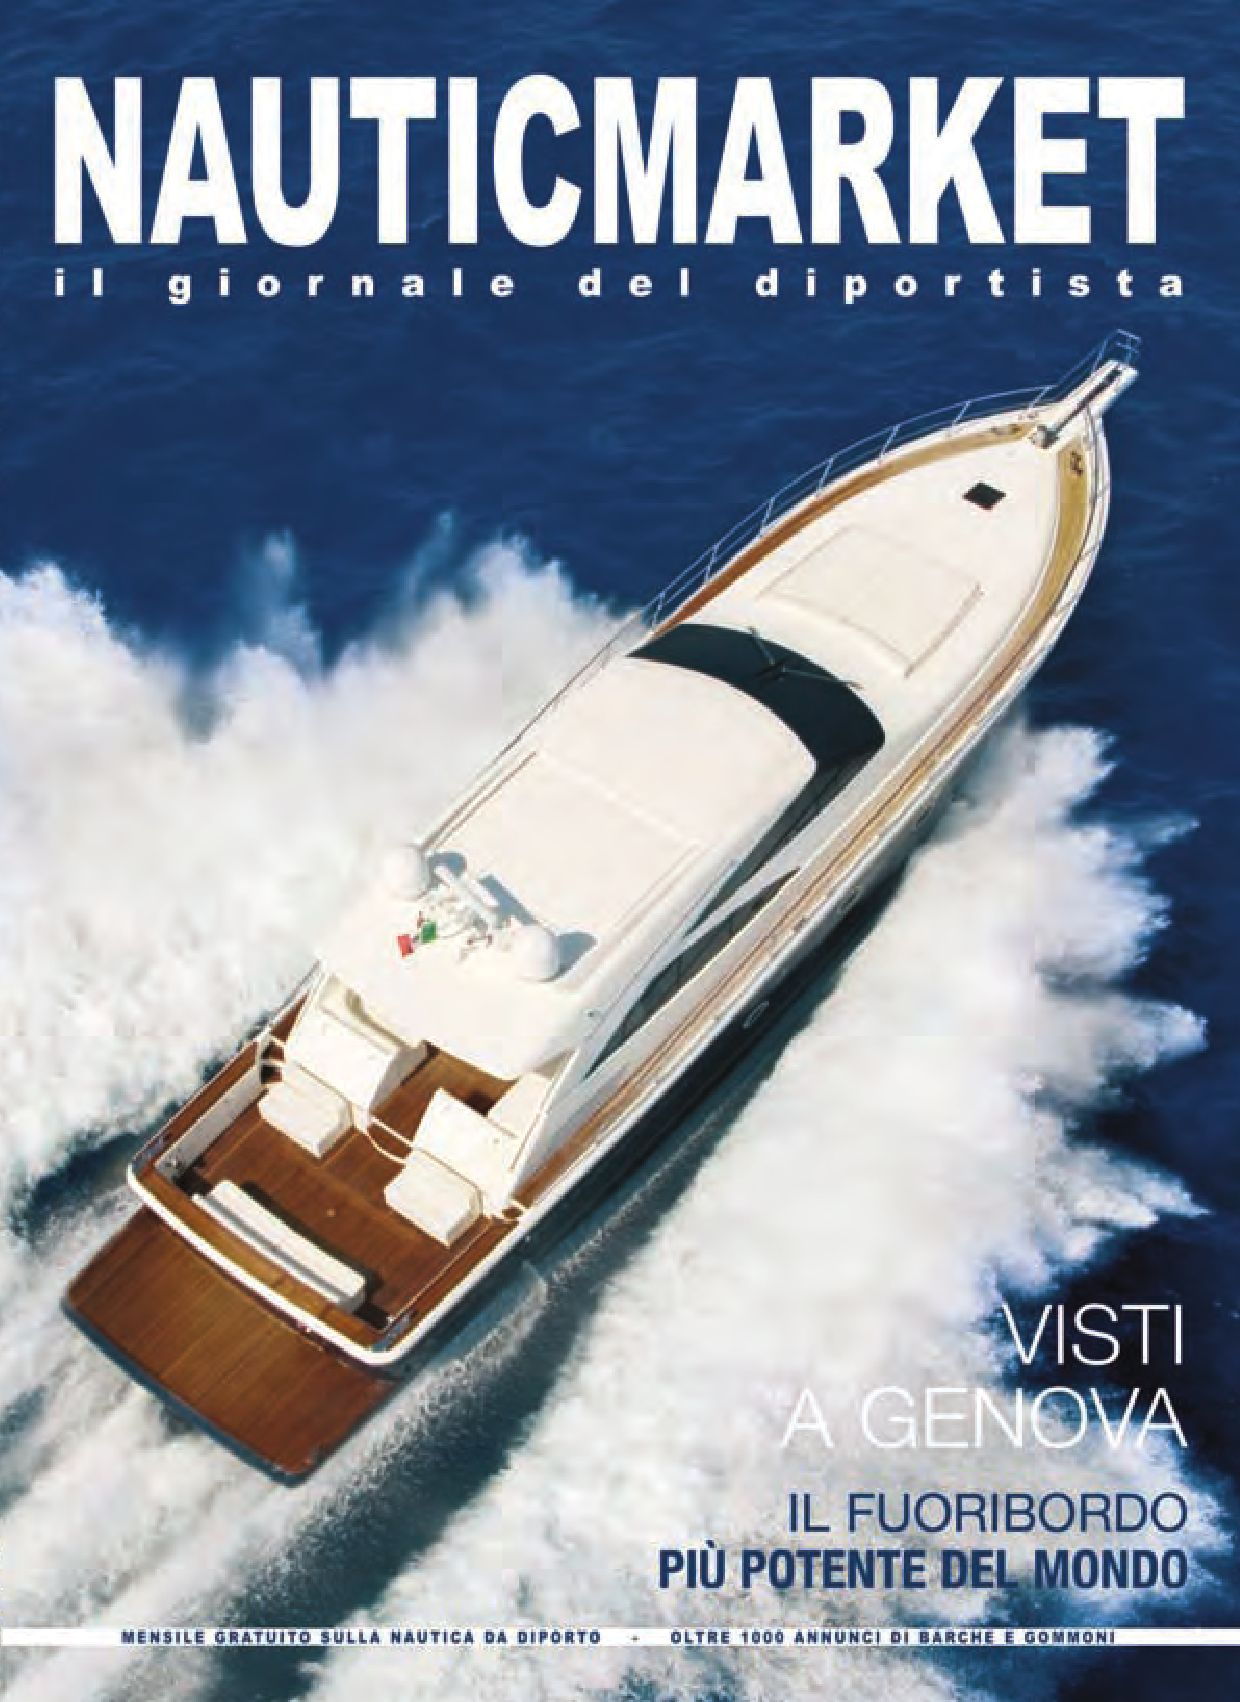 Nauticmarket by B P B P Mediagroup - issuu 8fe35a20c14